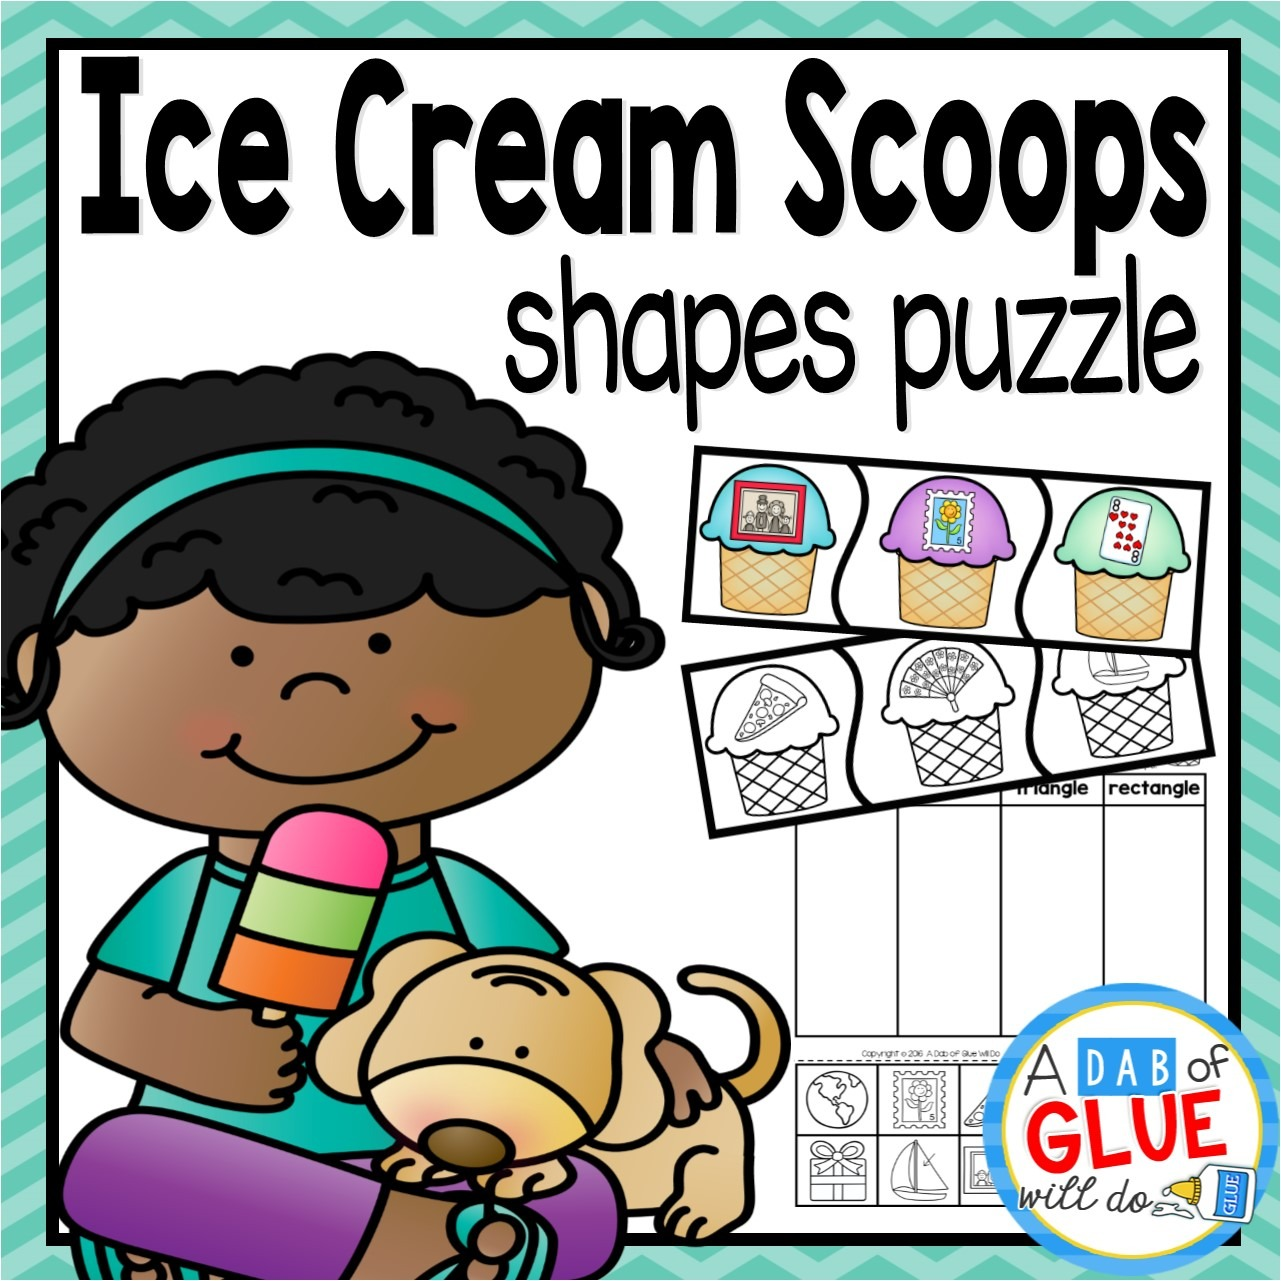 Make learning shapes fun with this Ice Cream Scoops themed shapes set that is perfect for your elementary aged children. Use these fun math summer themed worksheets to teach your Preschool, Kindergarten, and First Grade students phonics with fun shapes games and interactive shapes centers. All centers come with a color AND black and white option.